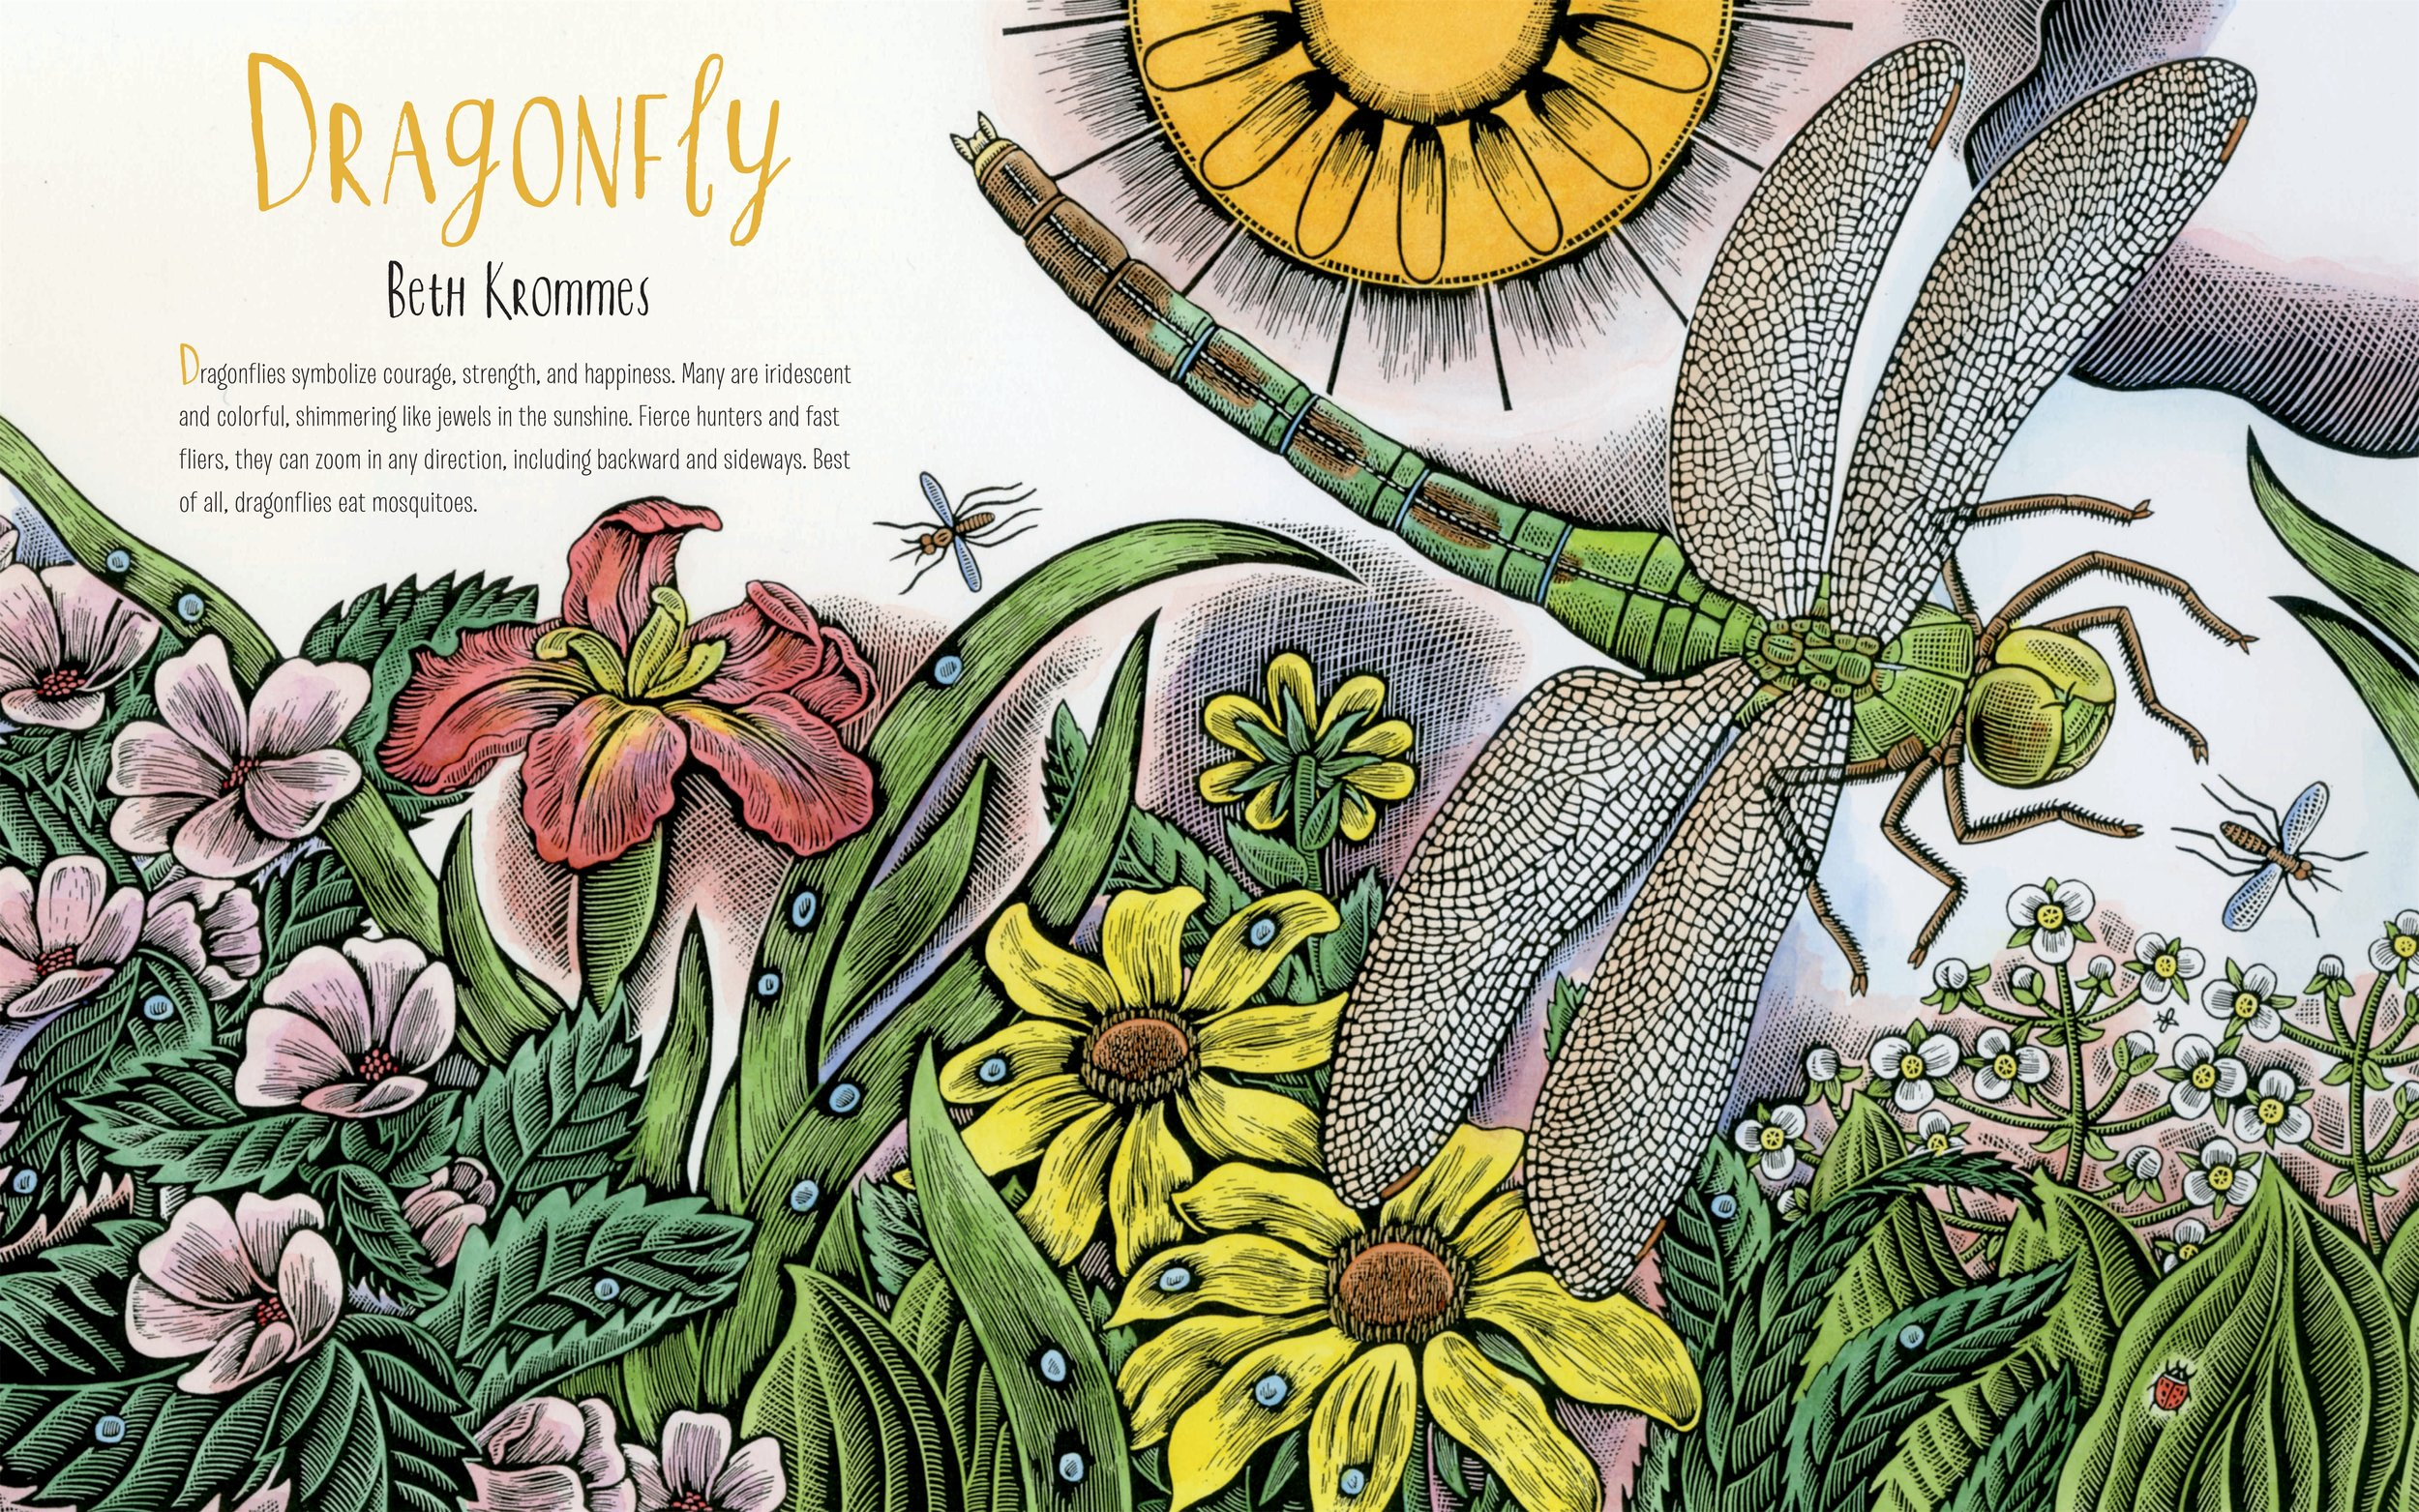 """""""Dragonflies symbolize courage, strength, and happiness. Many are iridescent and colourful, shimmering like jewels in the sunshine. Fierce hunters and fast fliers, they can zoom in any direction, including backwards and sideways. Best of all, dragonflies eat mosquitoes."""""""